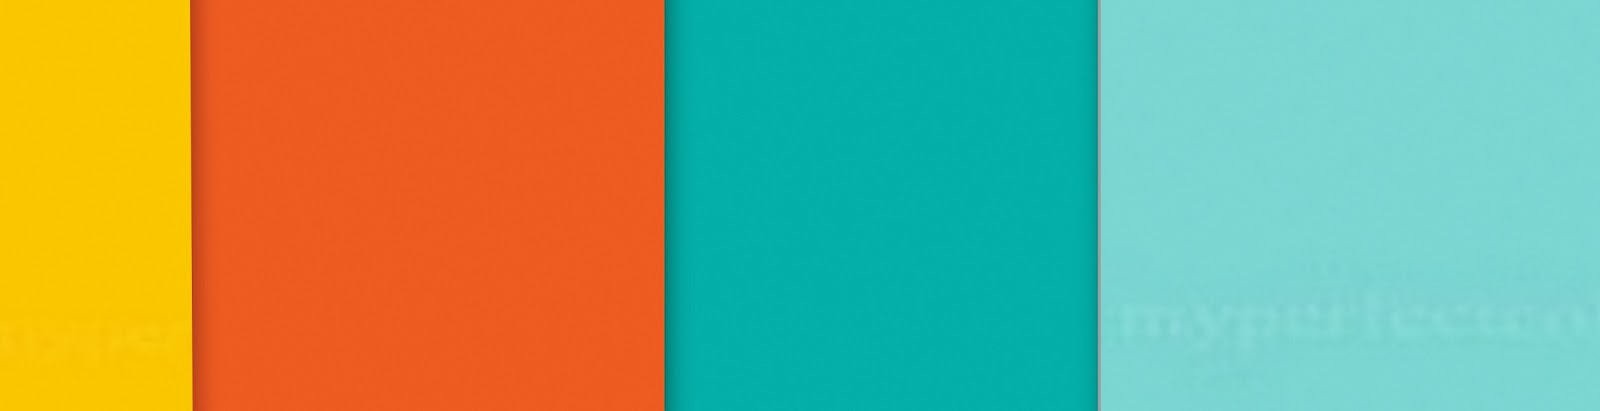 Colors that go with turquoise best wall photos with - What colors go with orange ...